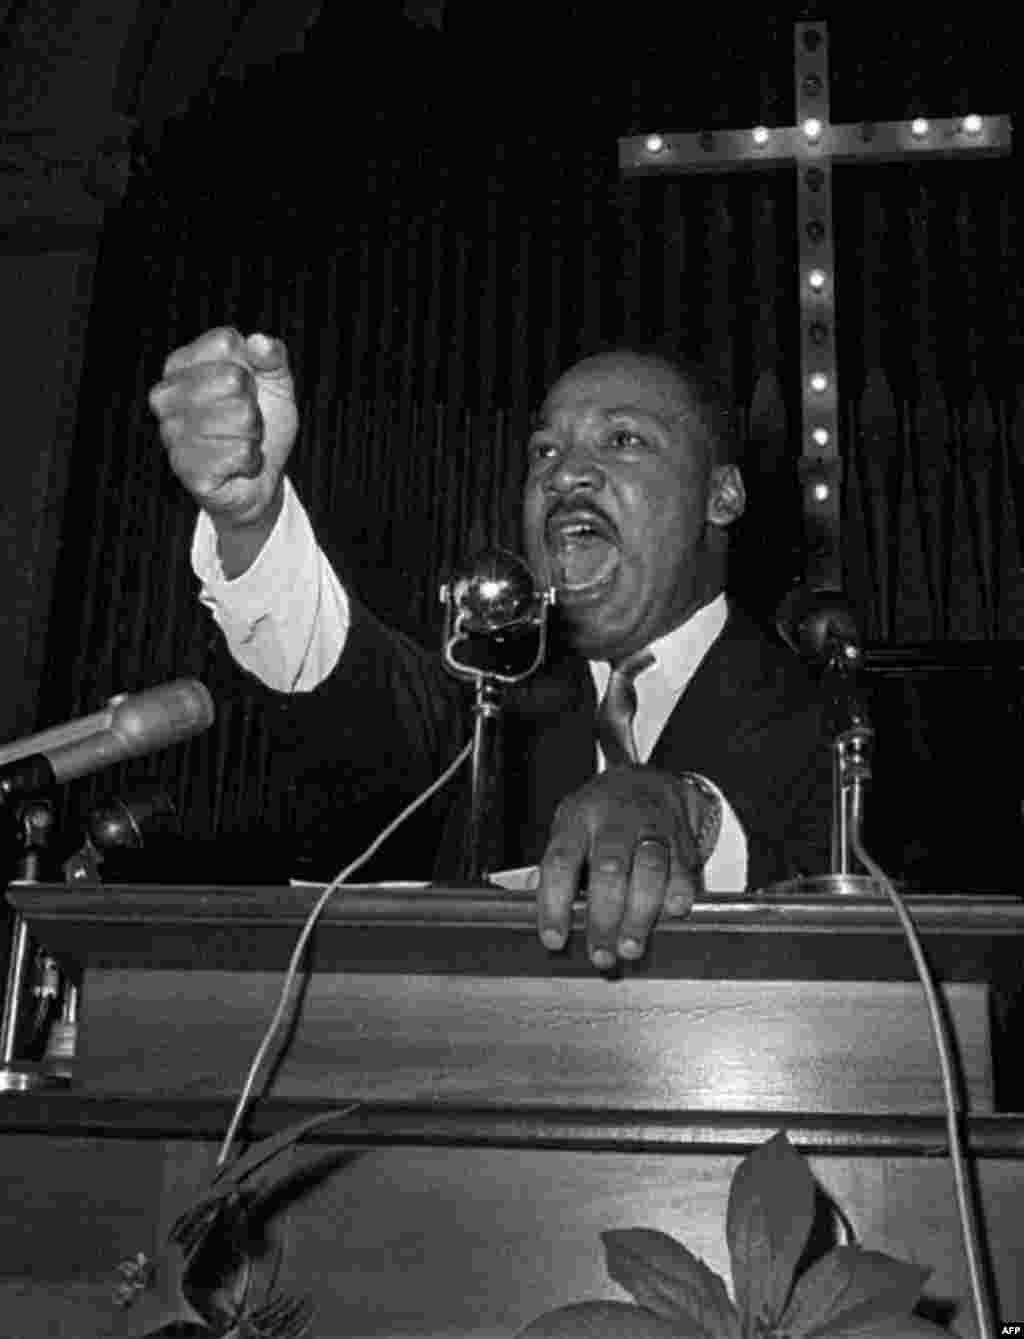 Dr. Martin Luther King Jr. during a speech in Eutaw, Alabama, June 1965. (AP)